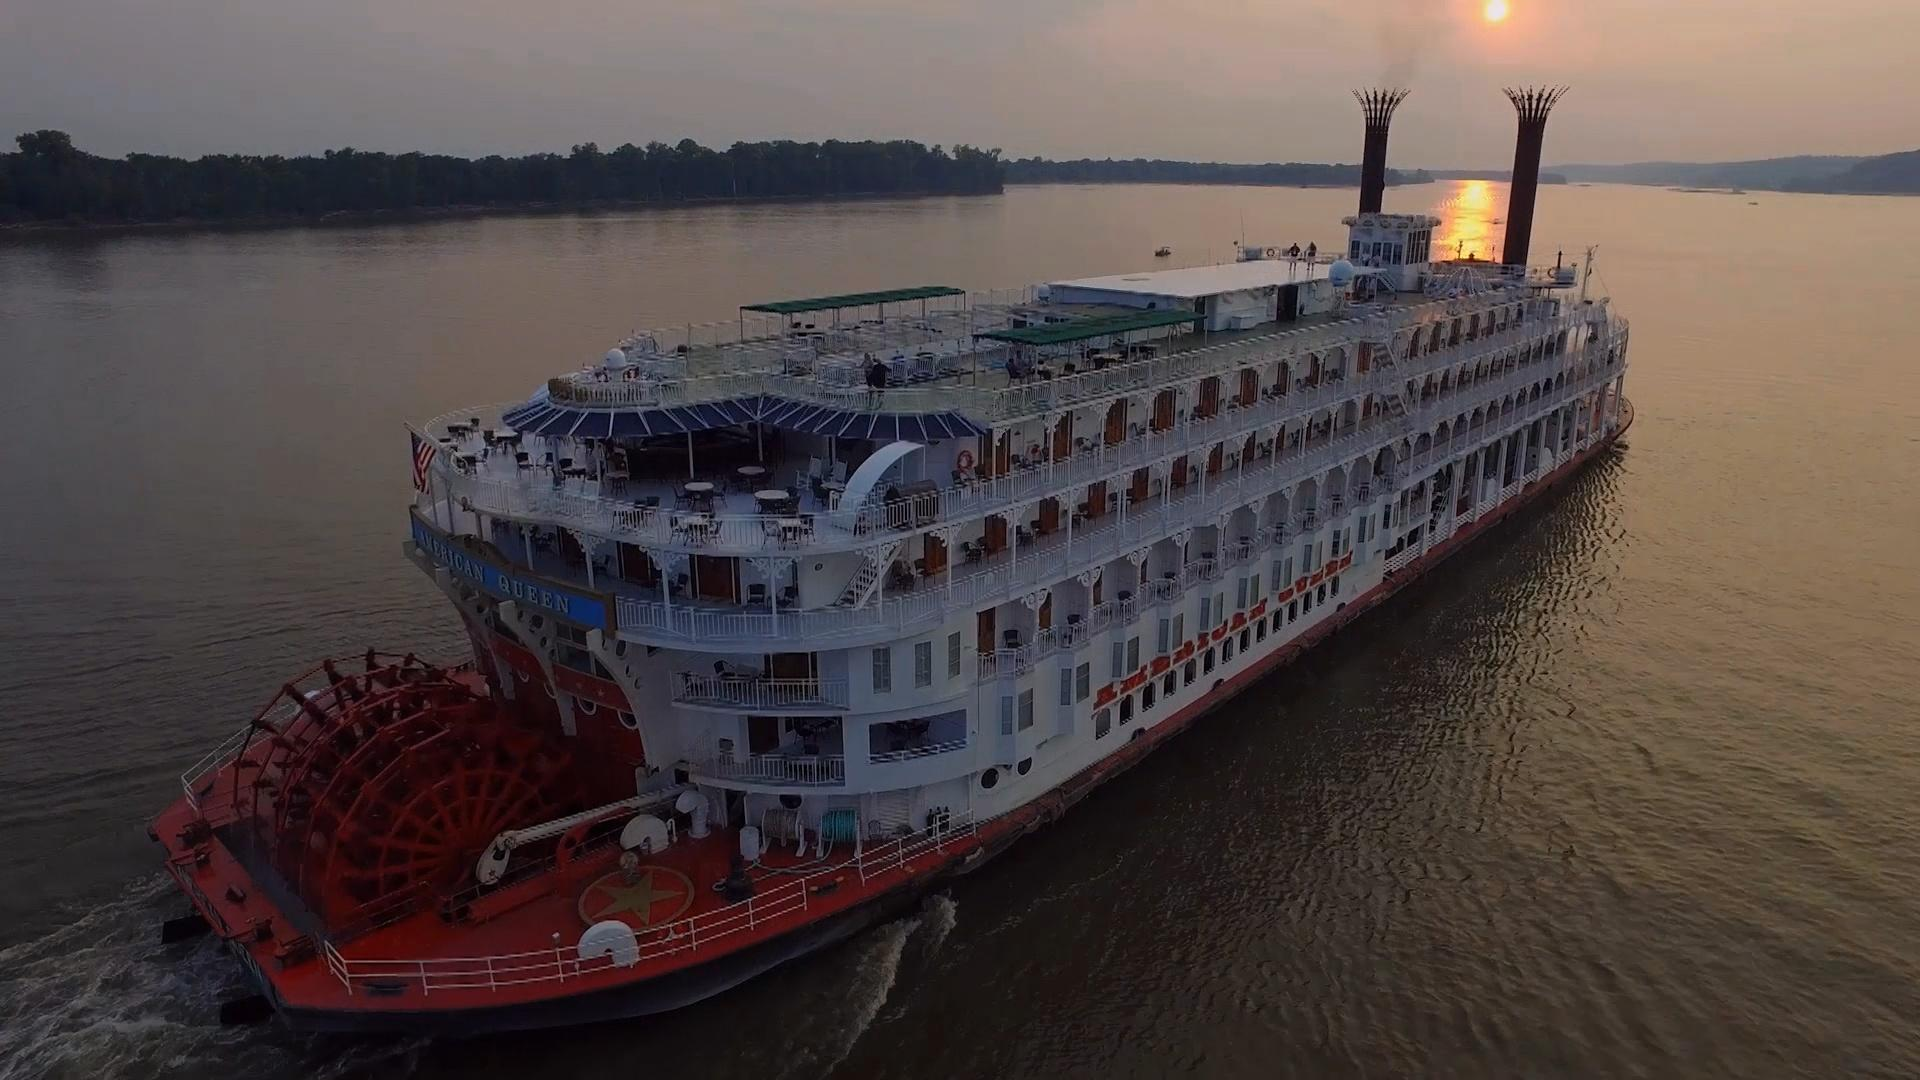 The American Queen on the Mississippi at sunset